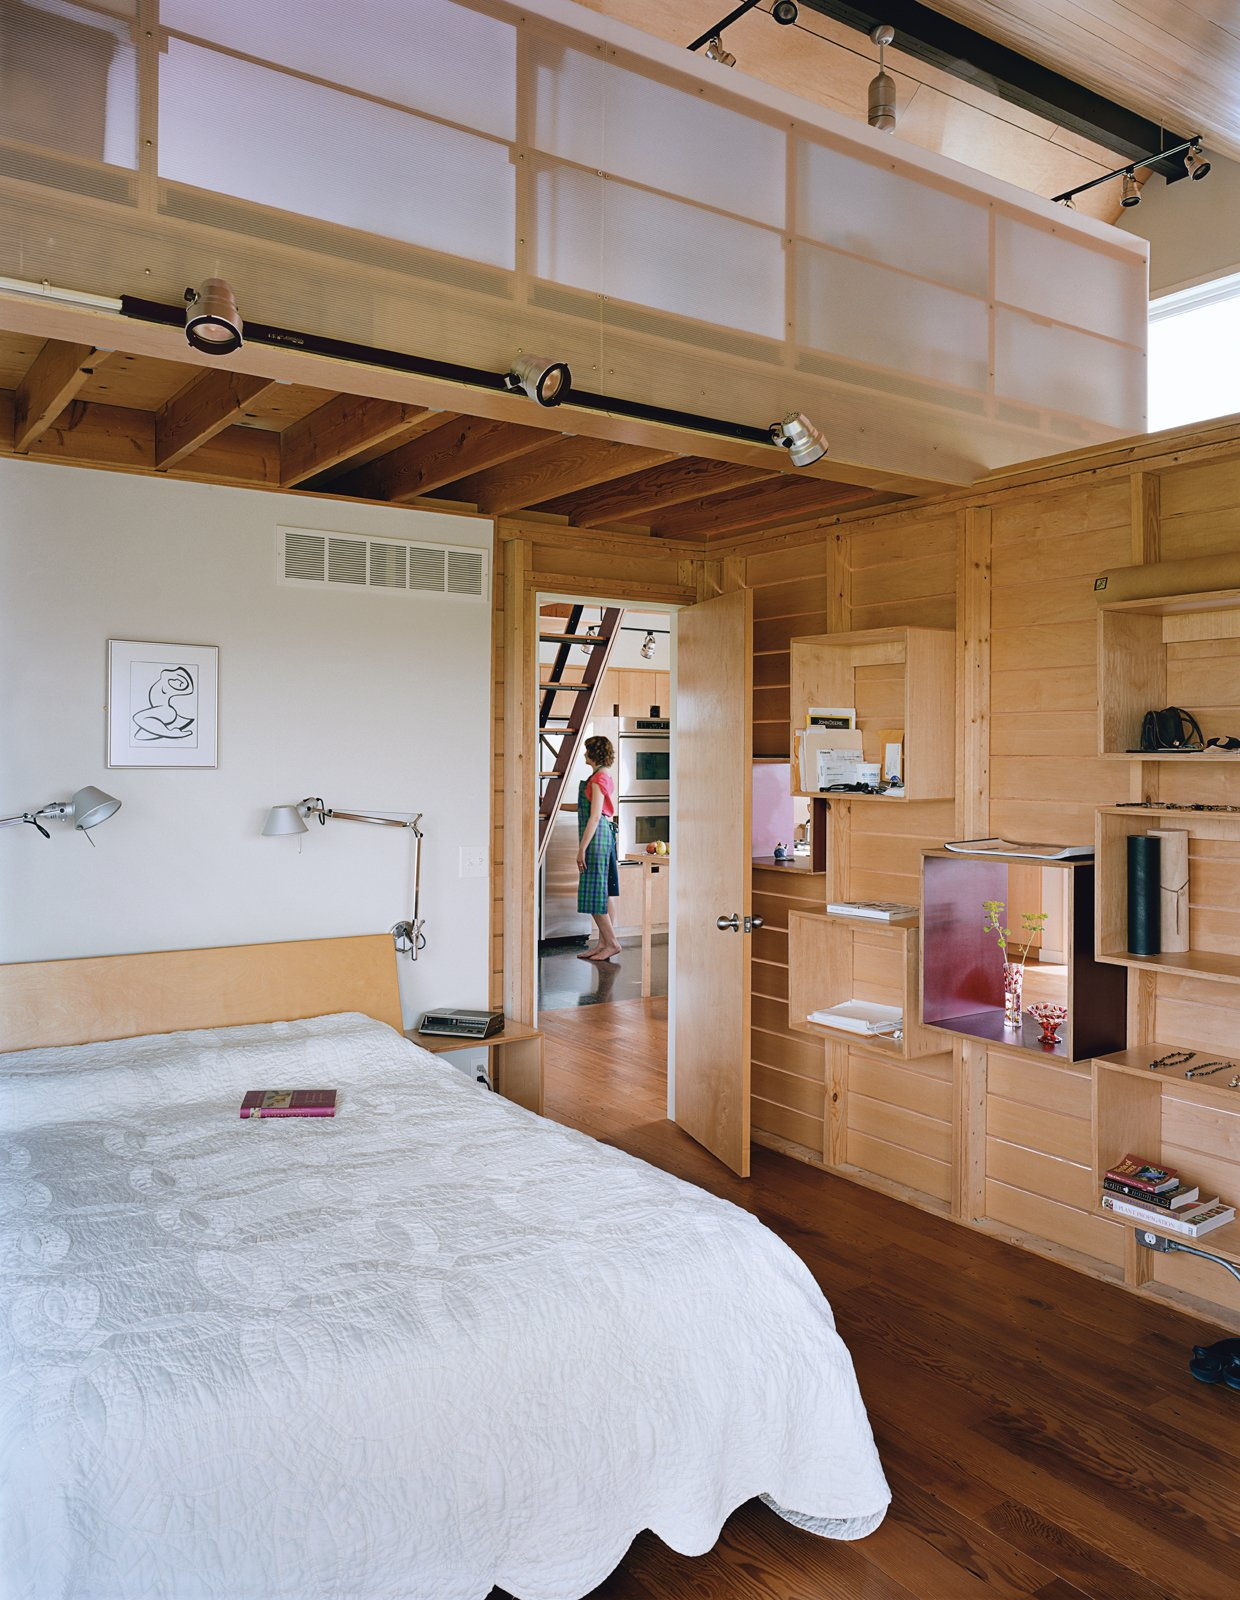 Bedroom, Storage, Shelves, and Bed The slatted wall that divides the sleeping and living quarters has maple-ply boxed shelves that can be rearranged.  Photo 2 of 10 in Farm Fresh